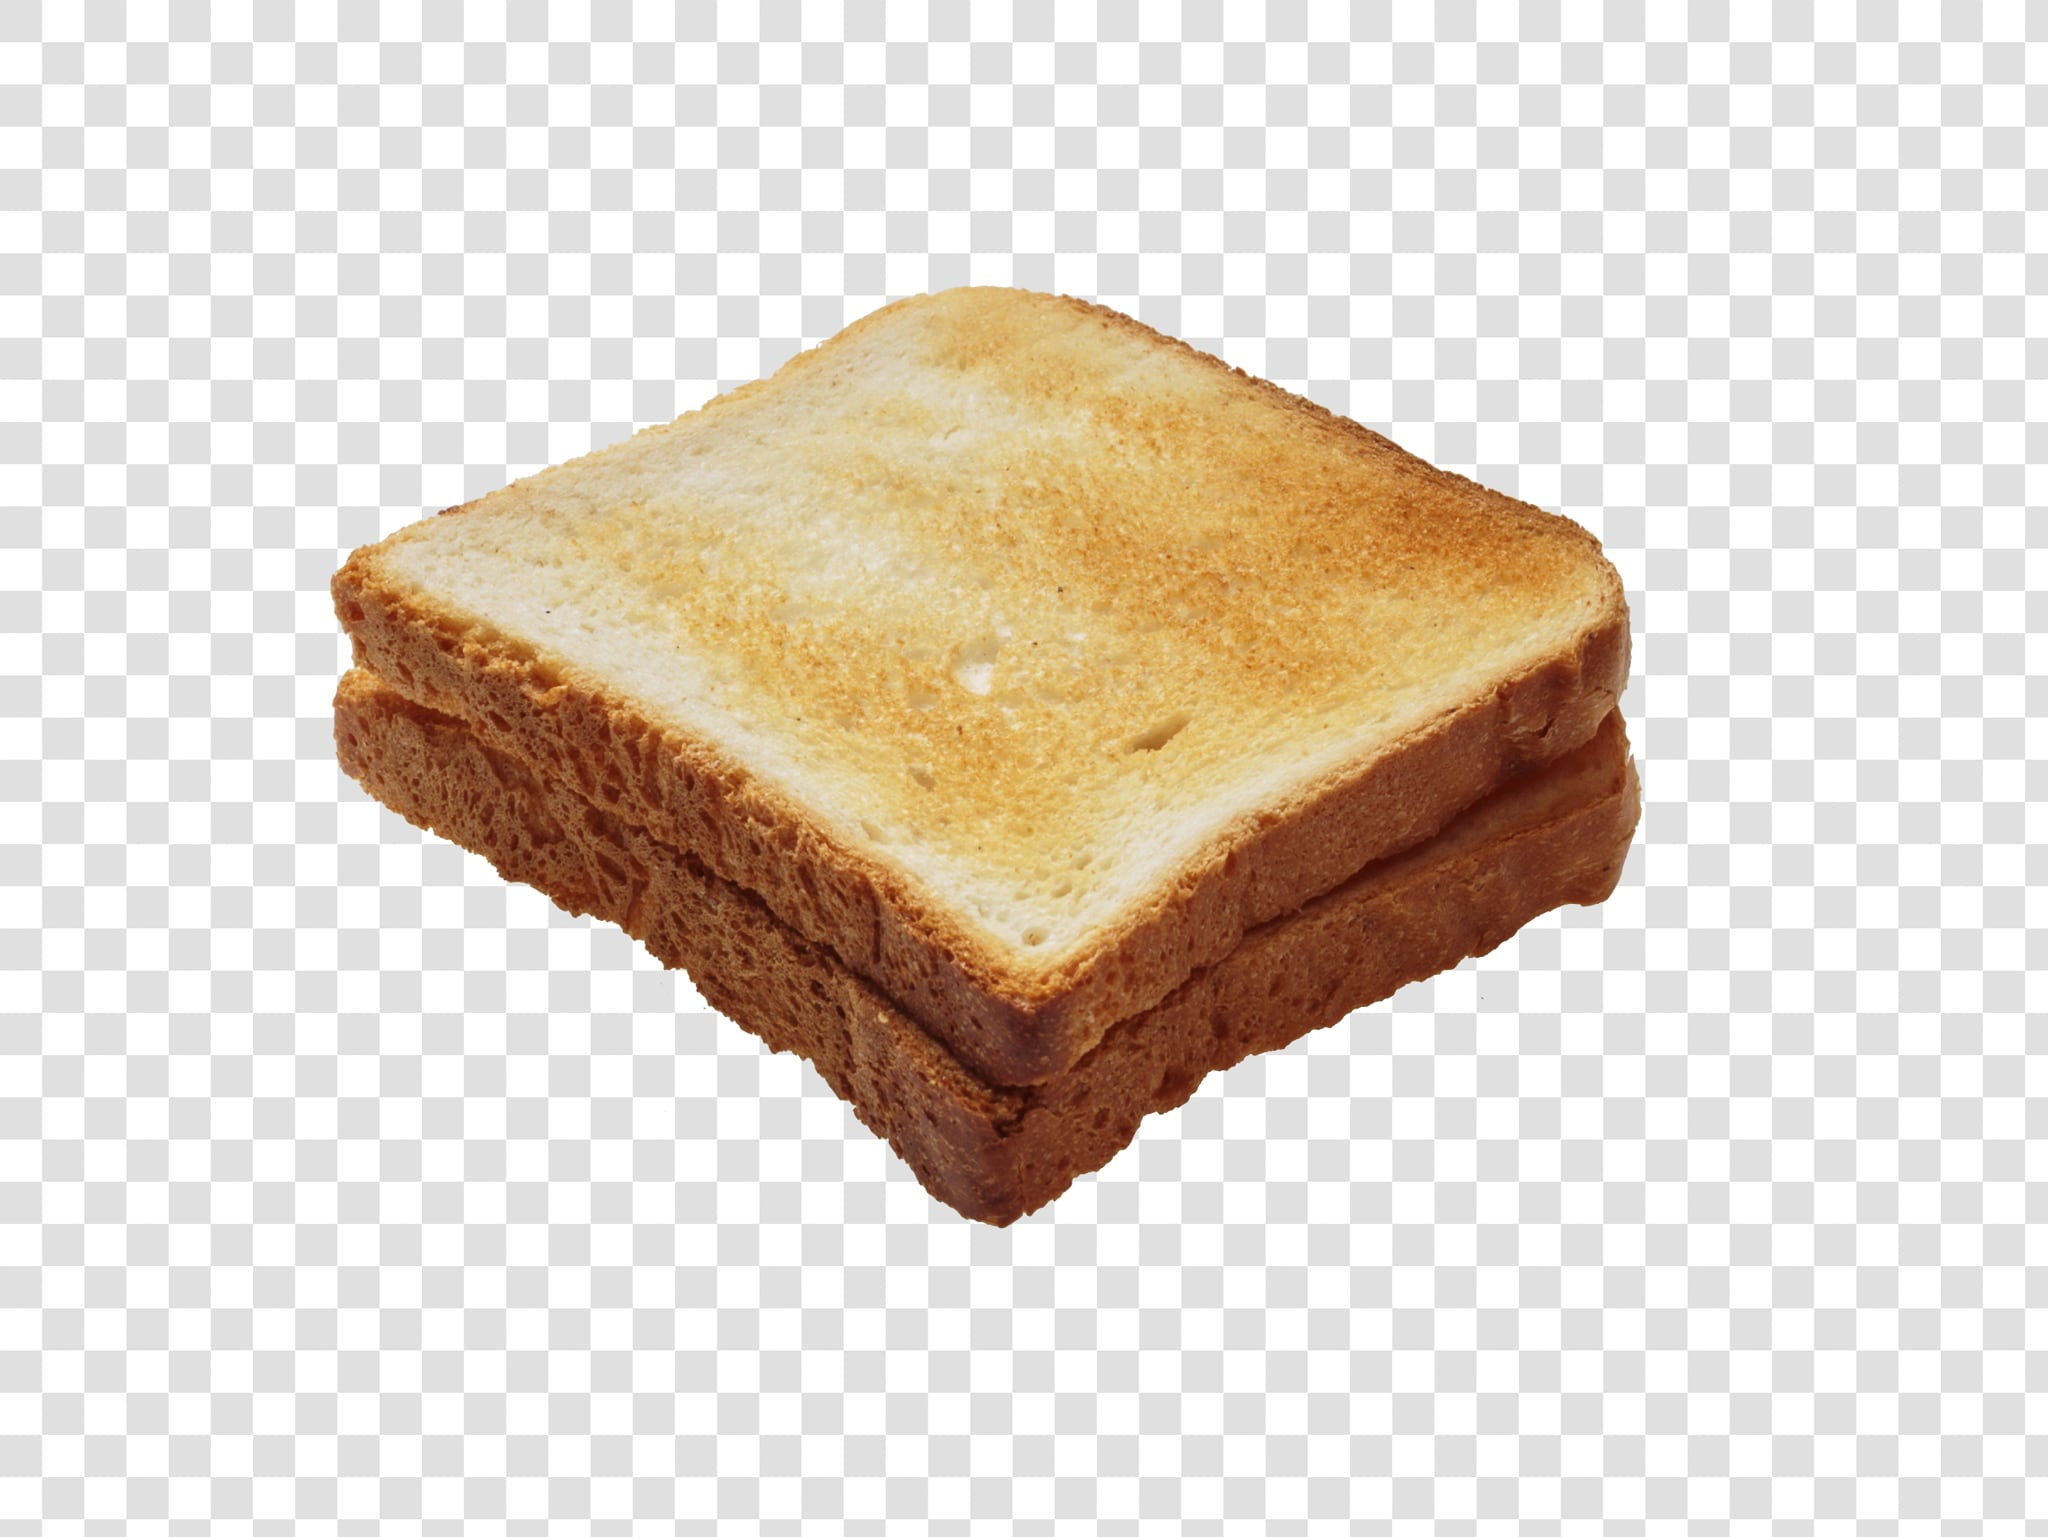 Bread PSD isolated image